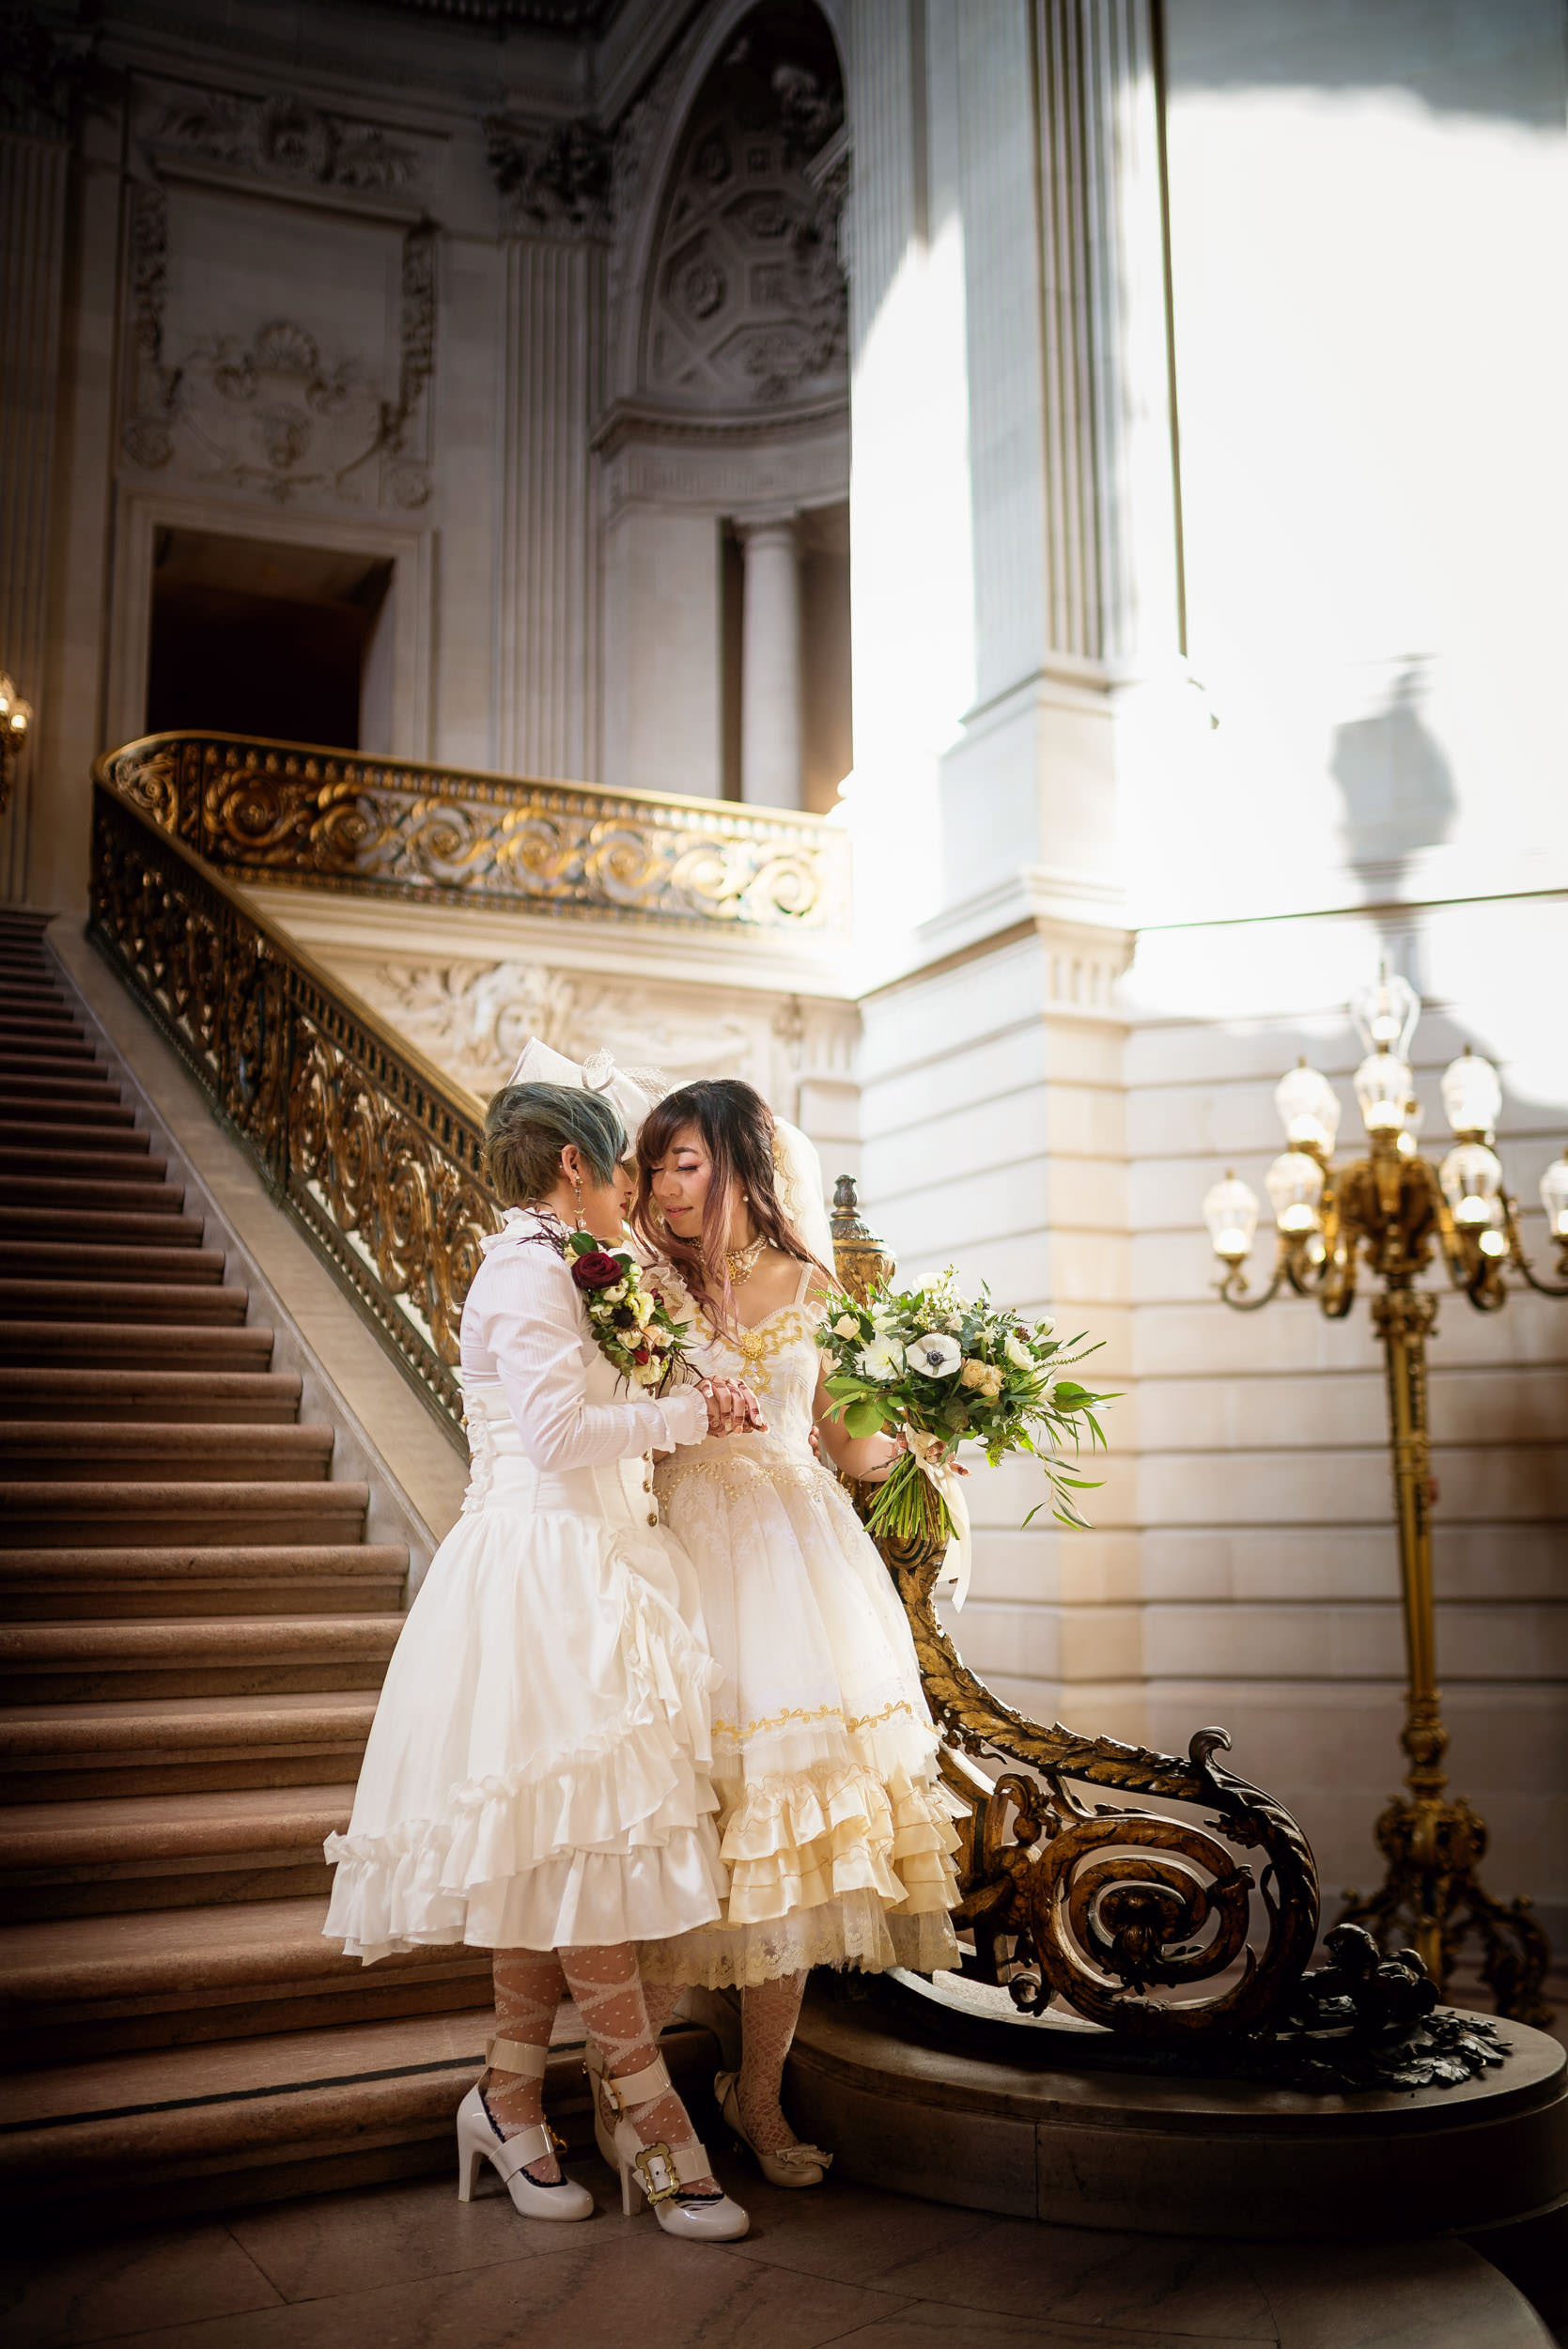 Chen_and_Shaf-WeddingDay-Lolita-Fashion-Elopement-San-Francisco-City-Hall.jpg